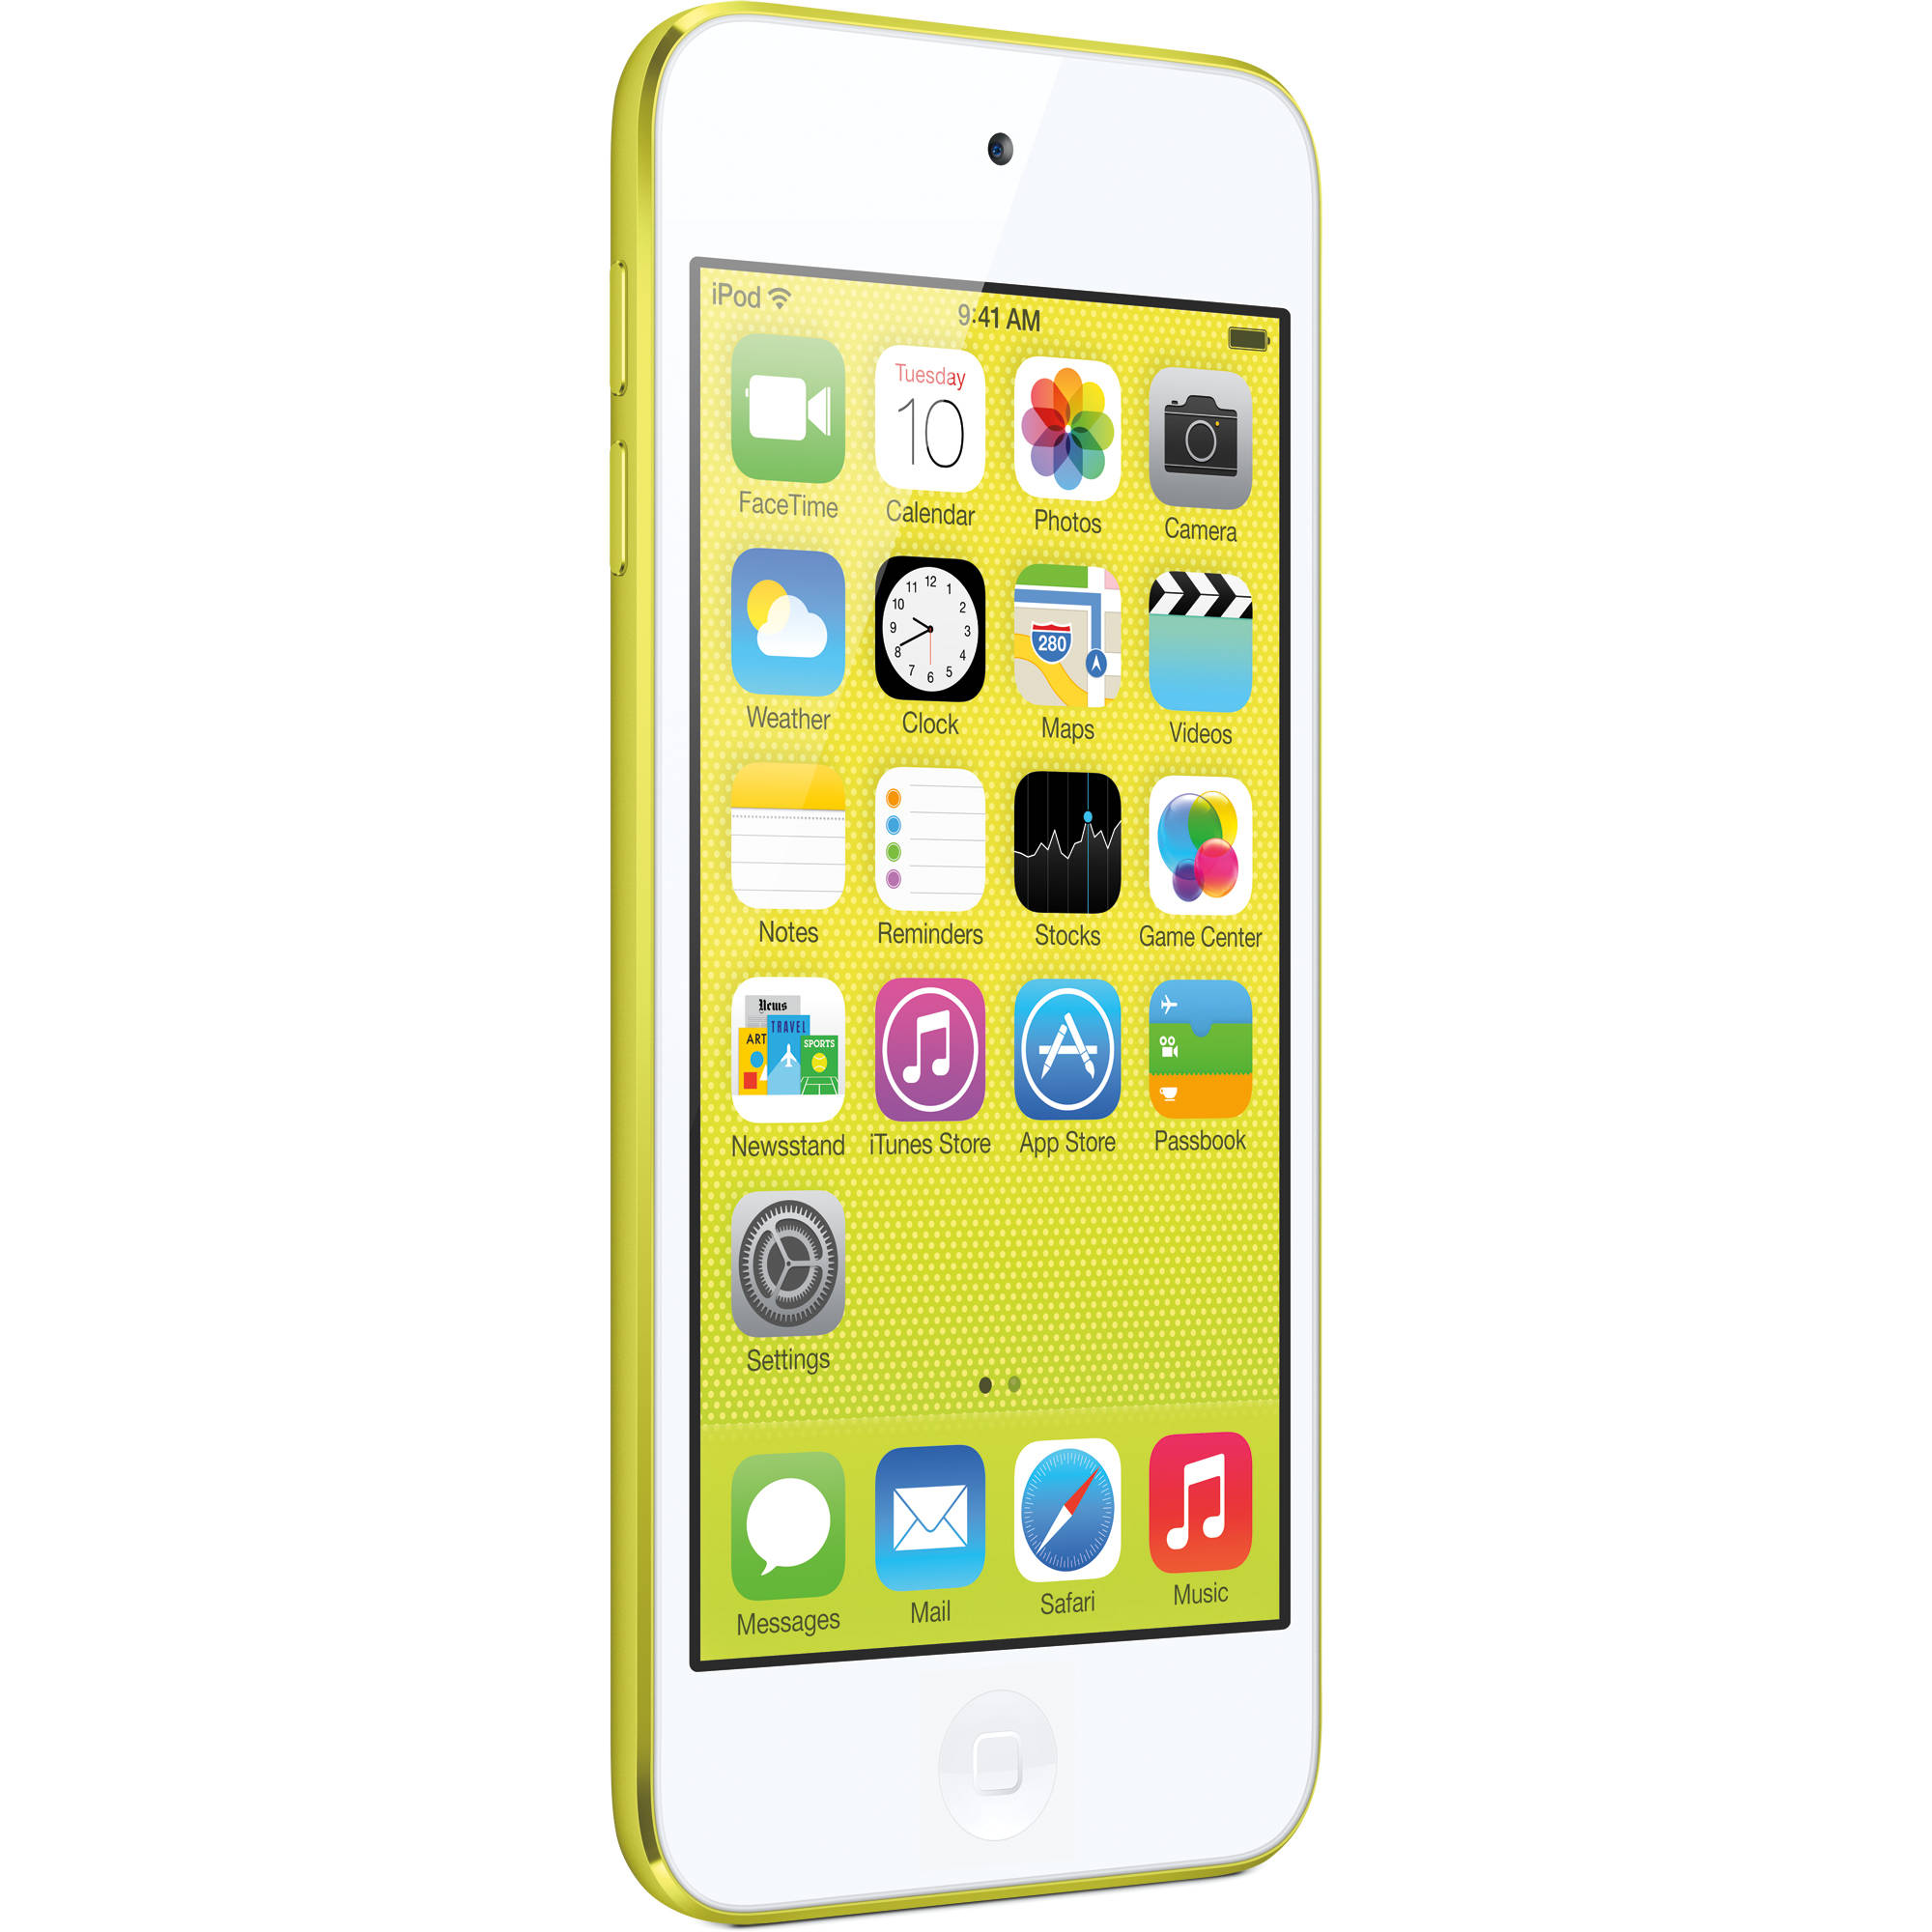 Apple iPod touch 32GB (Assorted Colors)